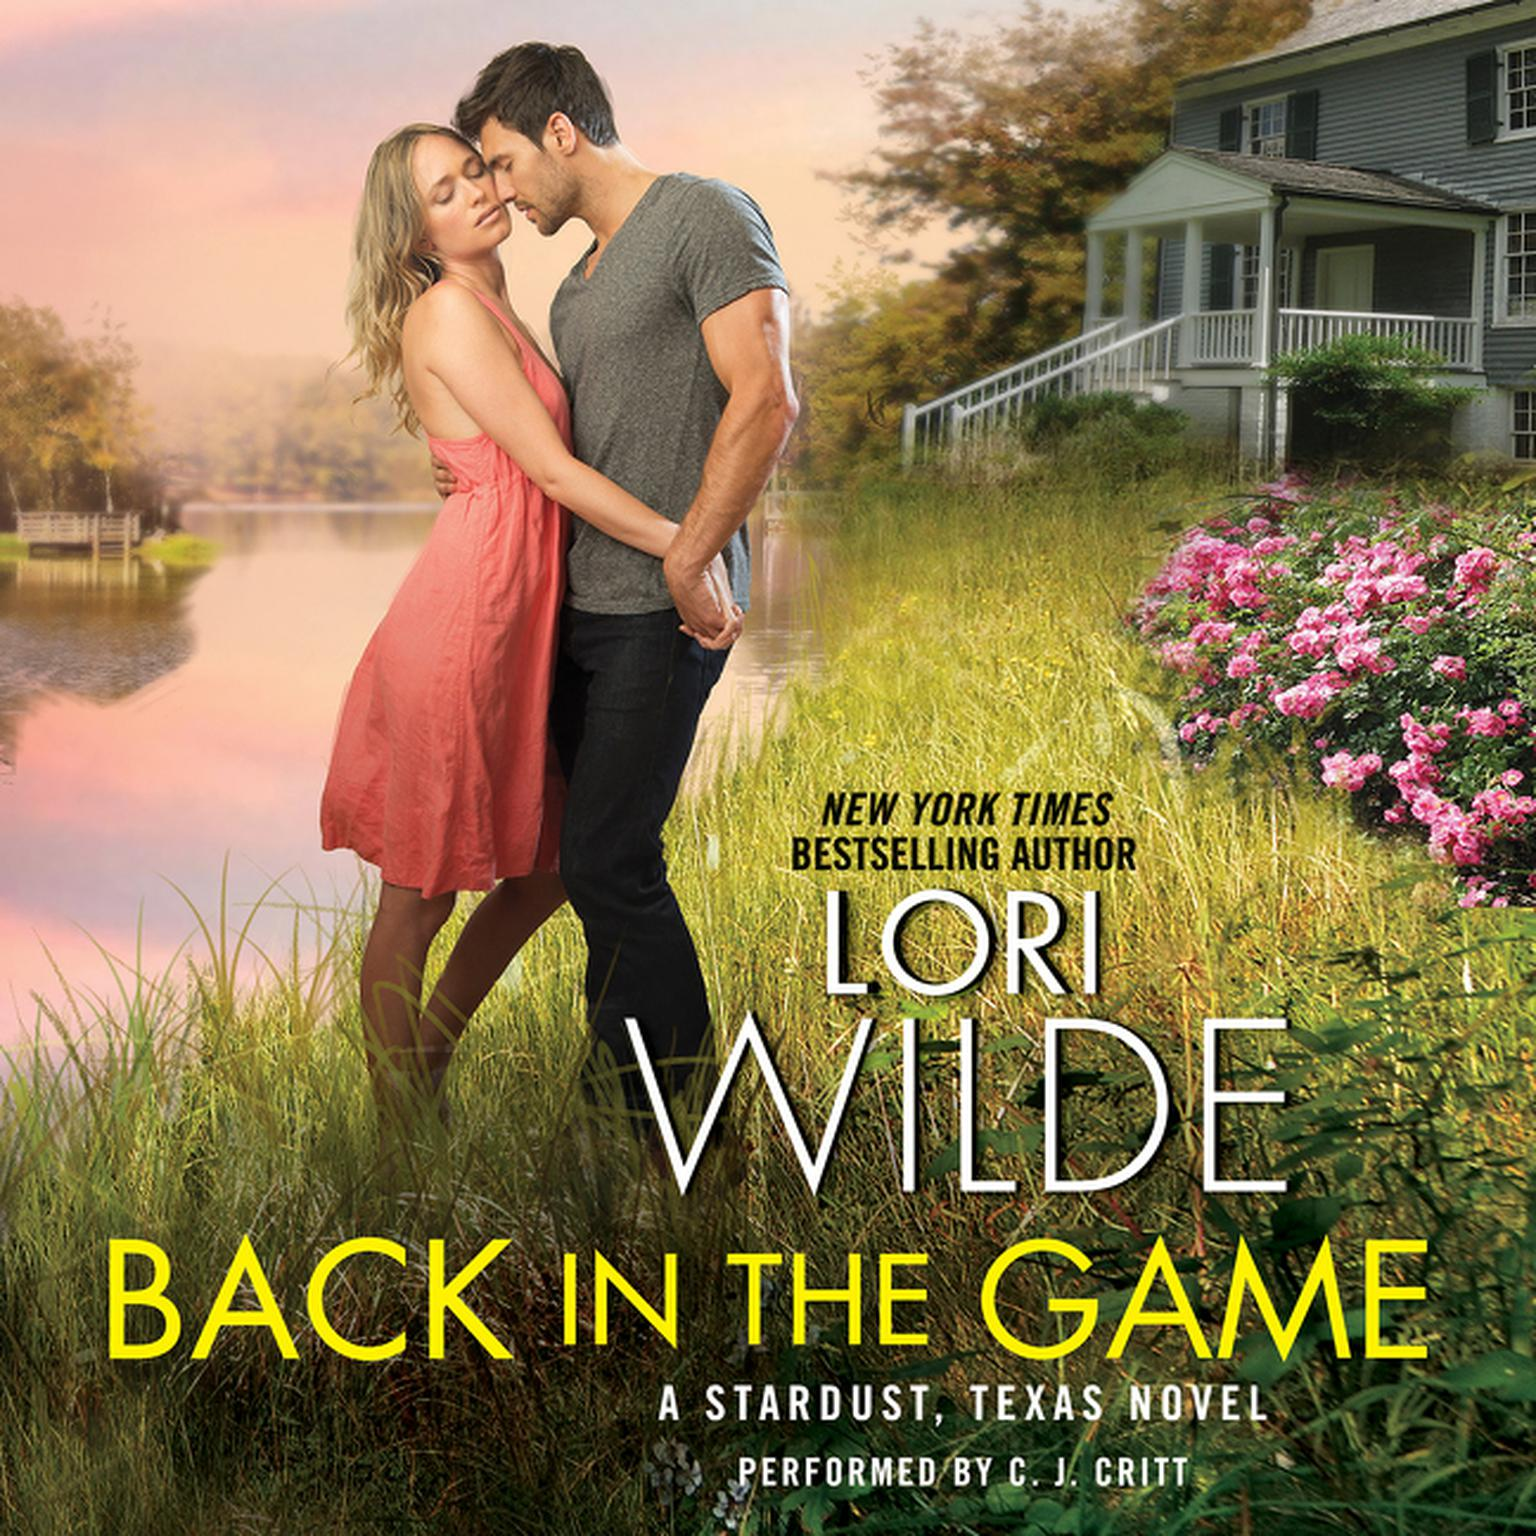 Printable Back in the Game: A Stardust, Texas Novel Audiobook Cover Art